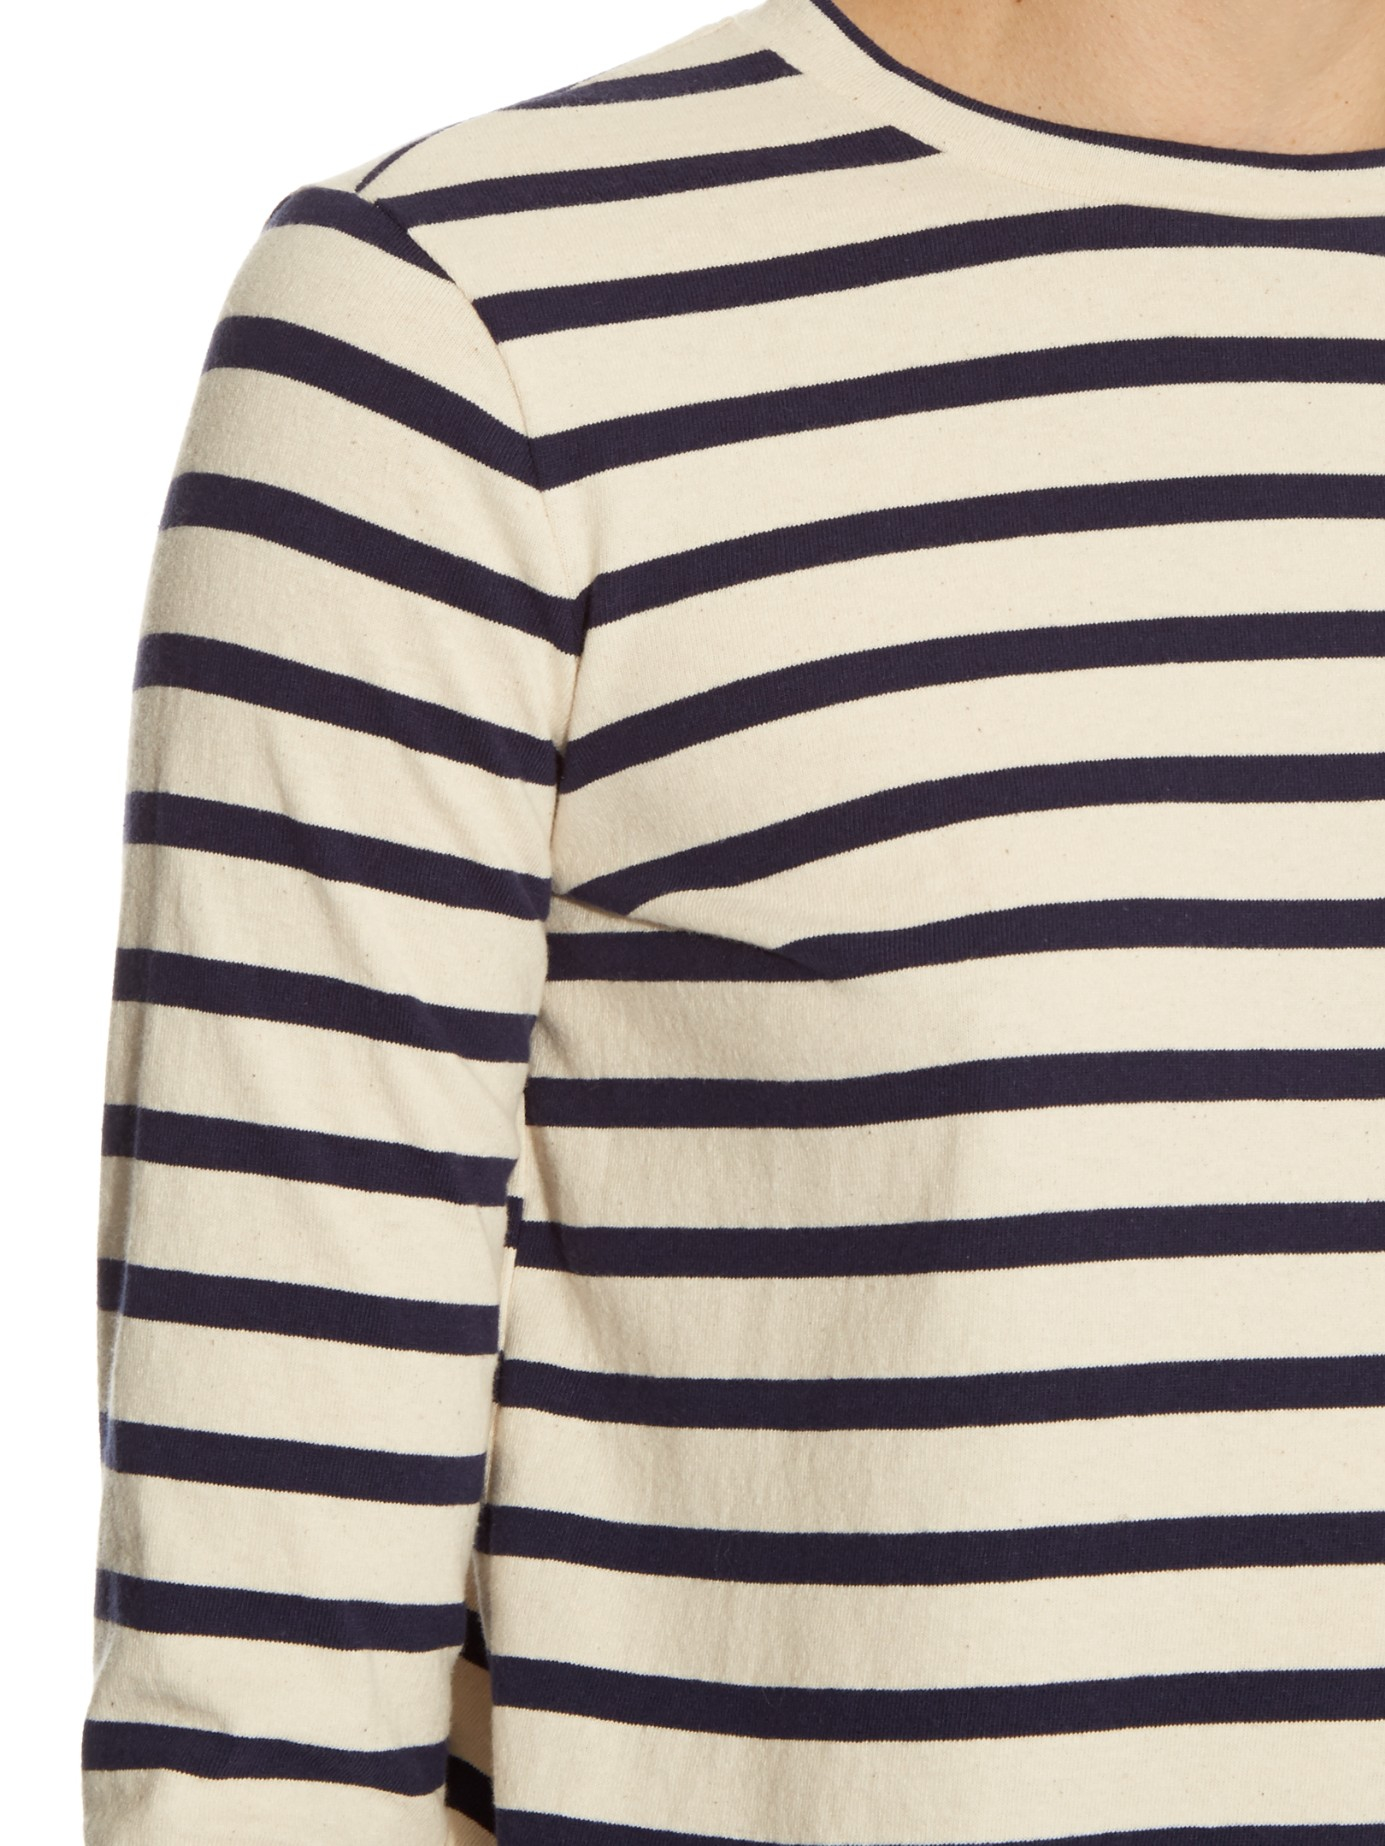 Raey Striped Crew Neck Long Sleeved T Shirt In Blue Lyst